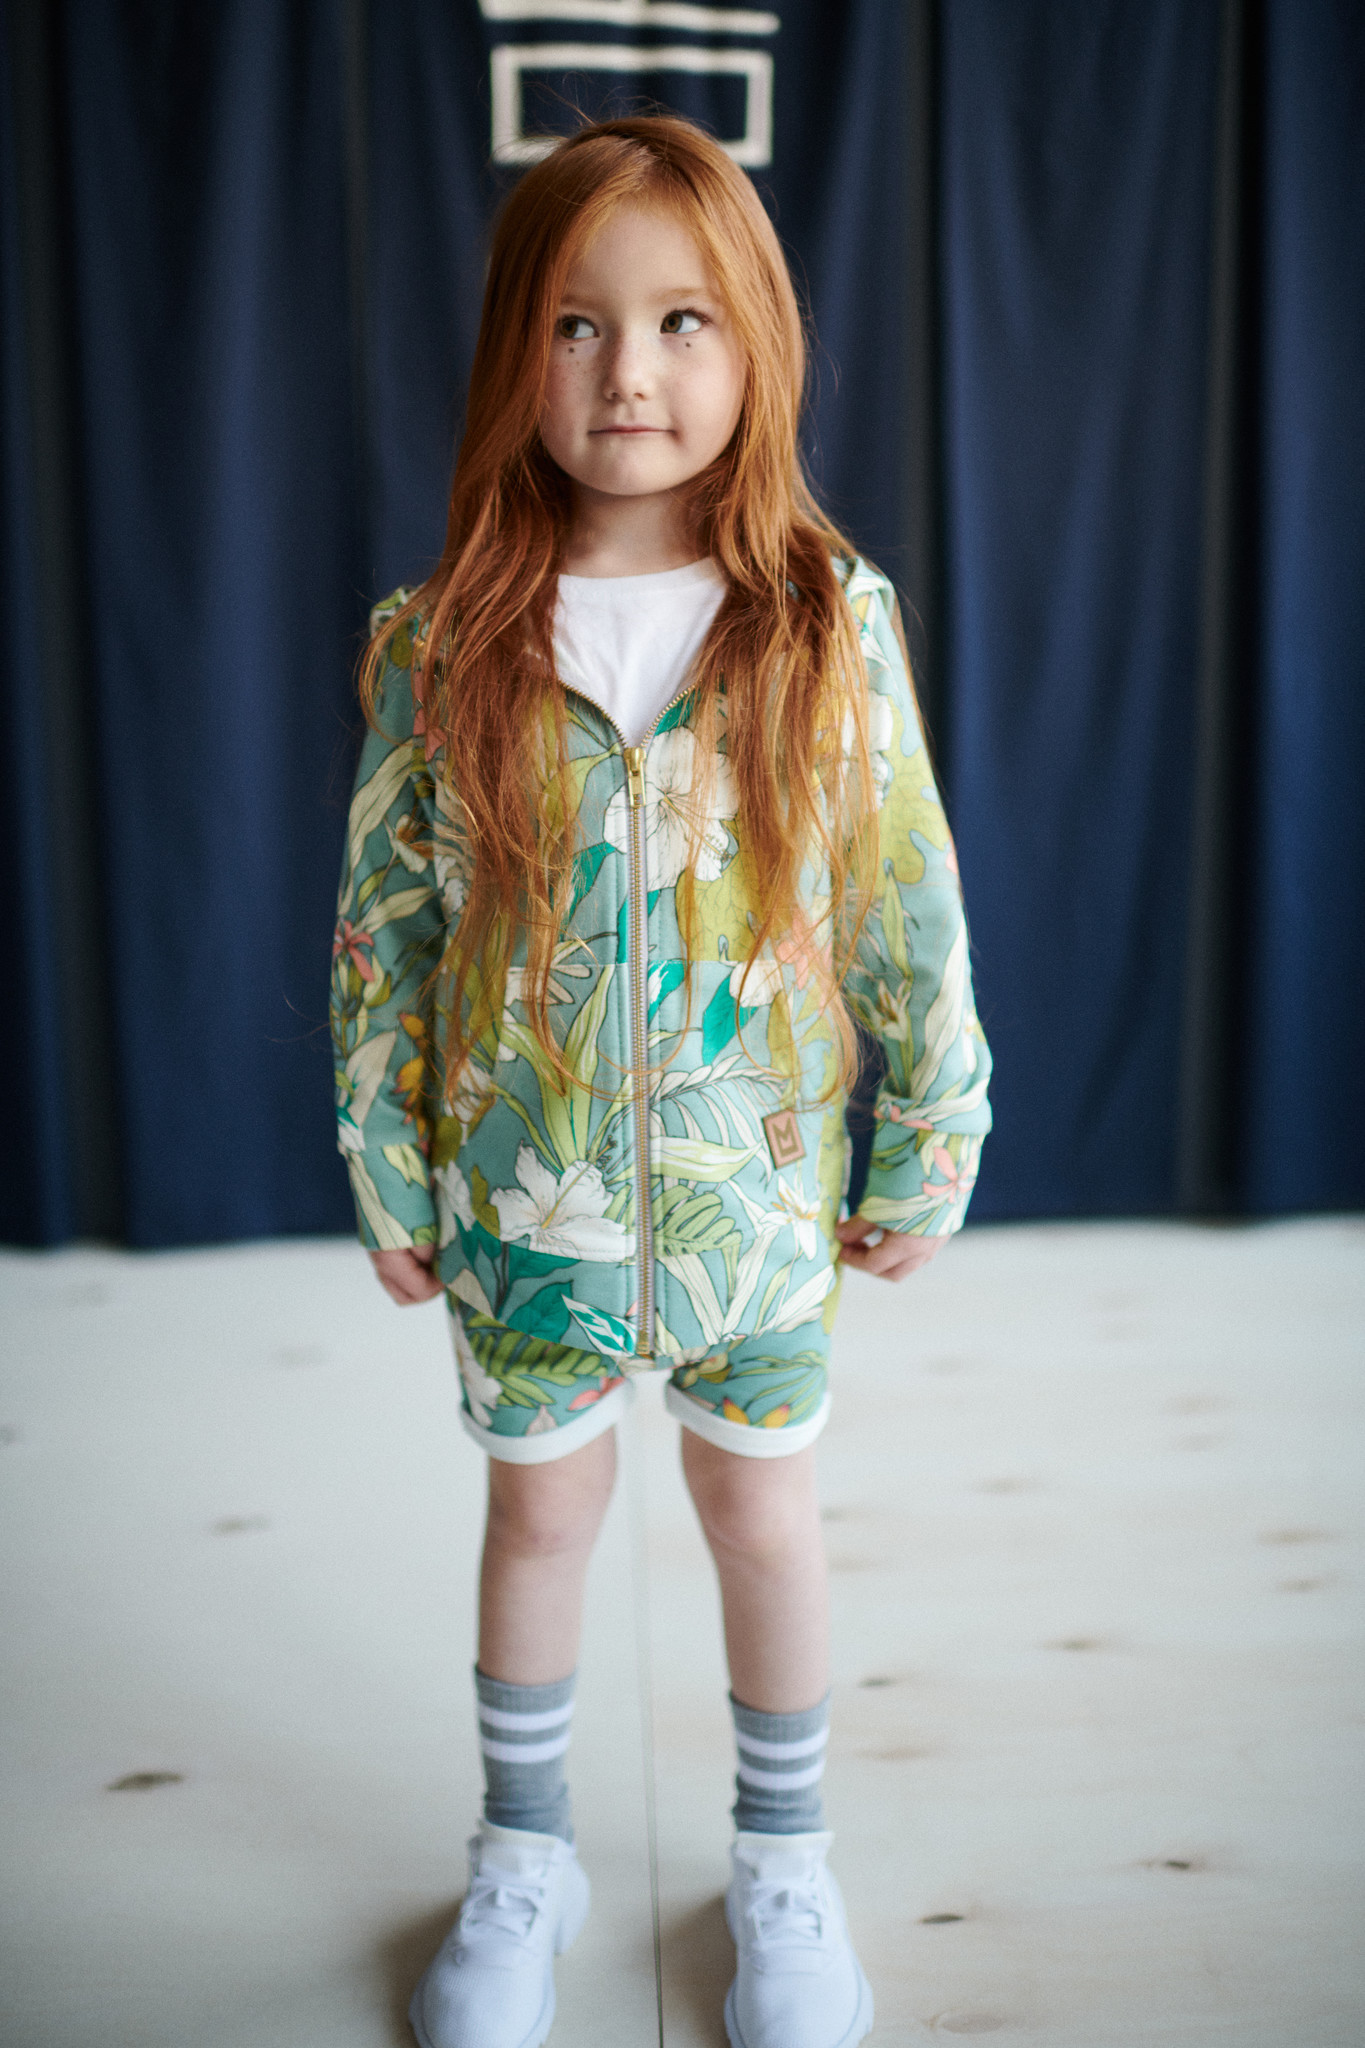 Minikid SHORTS WITH FLORAL PRINT | CHILDREN'S CLOTHING | MINIKID